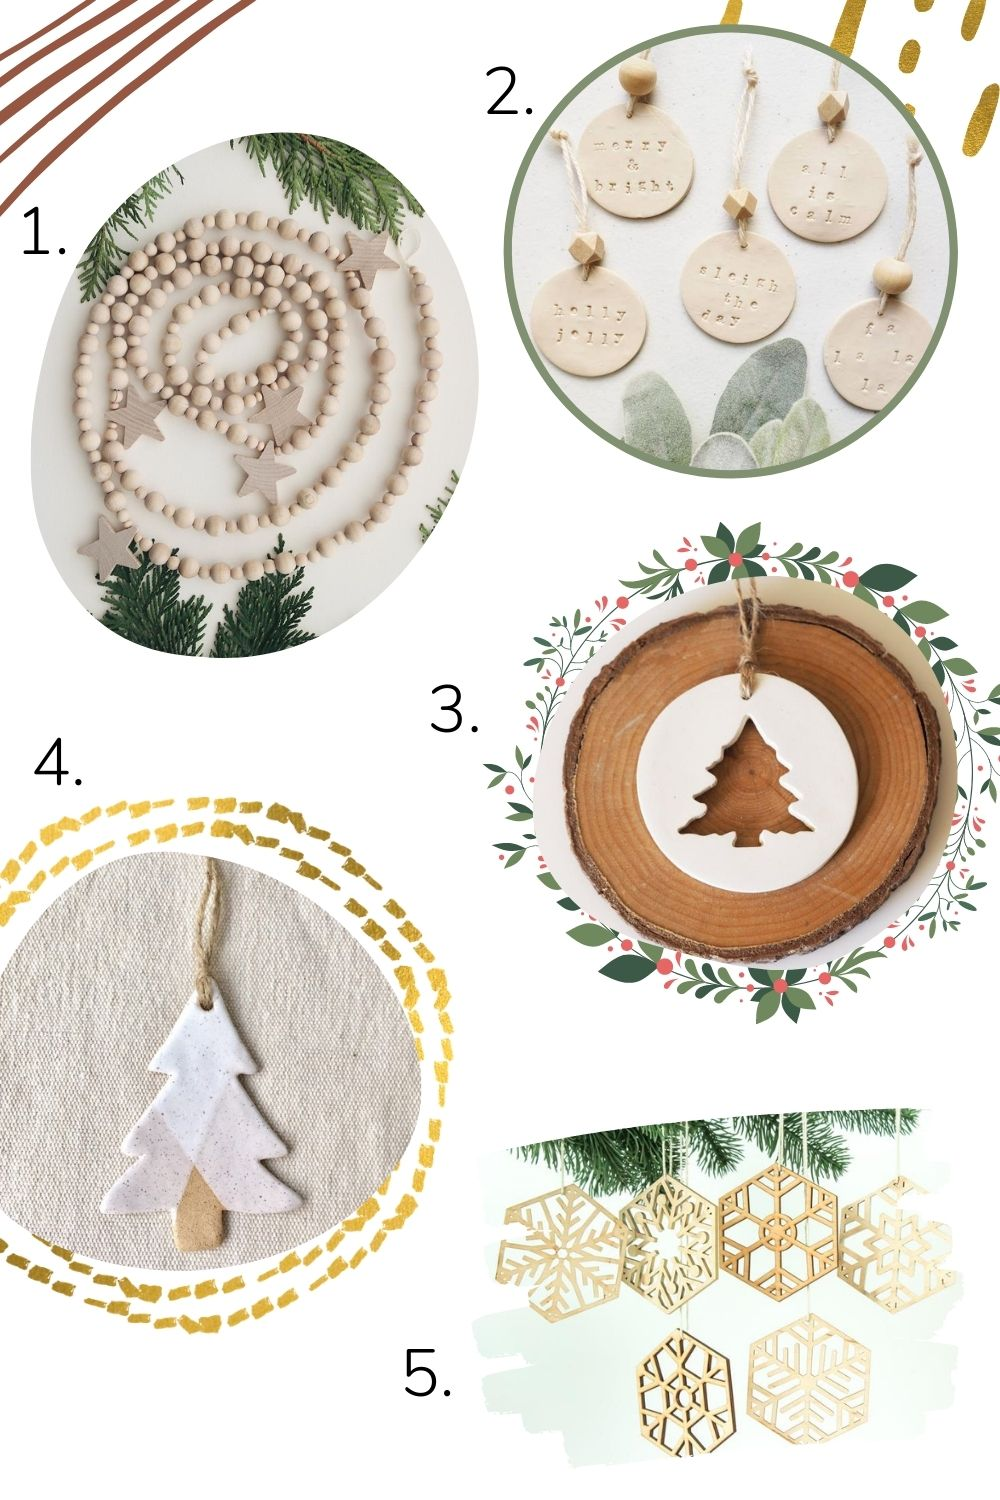 Collage of handcrafted minimalist Christmas ornaments and tree decorations.